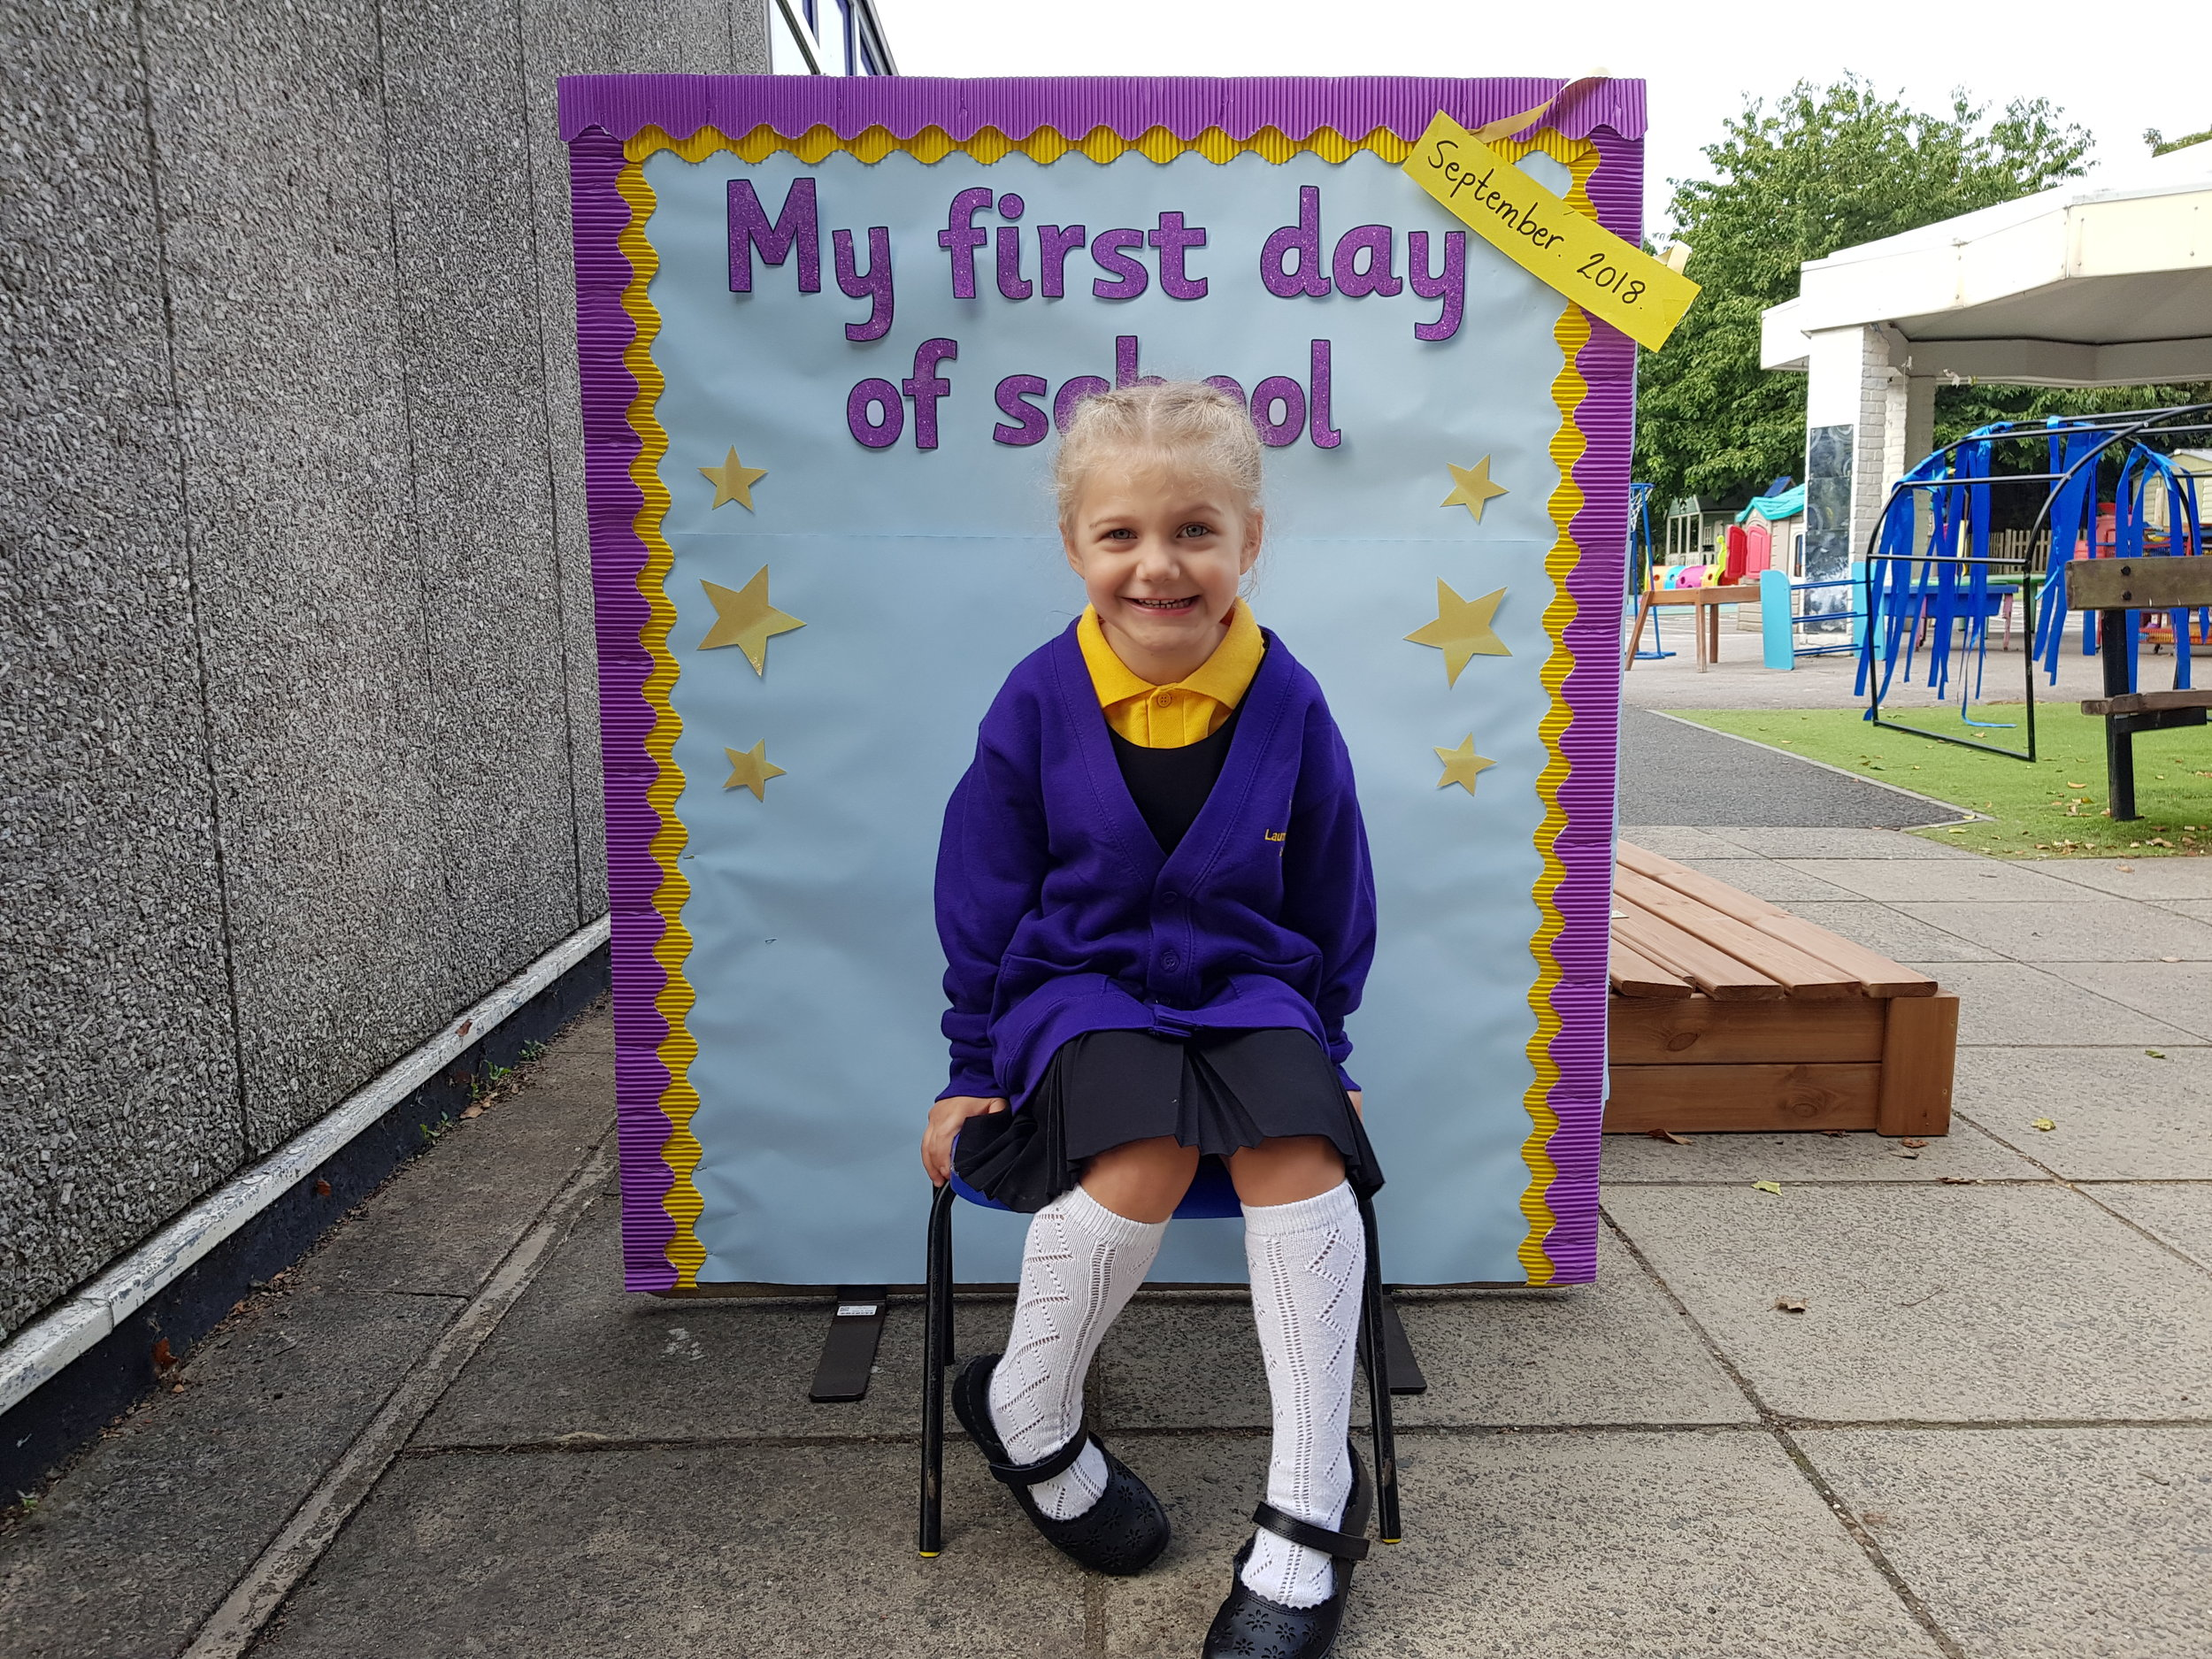 Squidgy's first day of school 2018